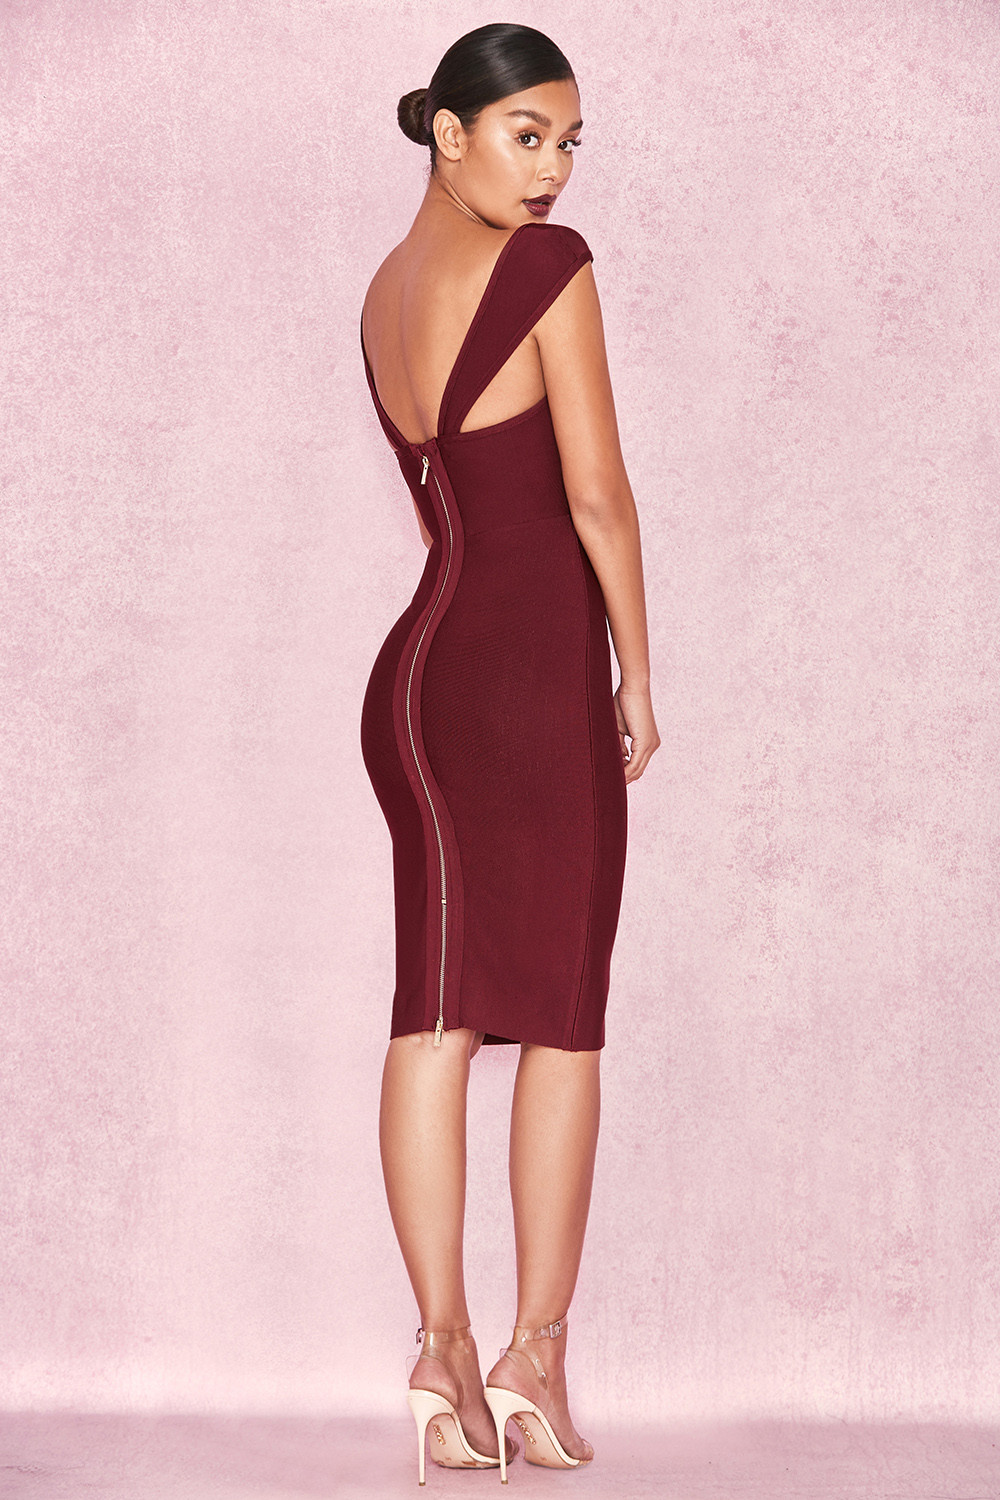 Clothing : Bandage Dresses : 'Anelle' Wine Bandage Dress